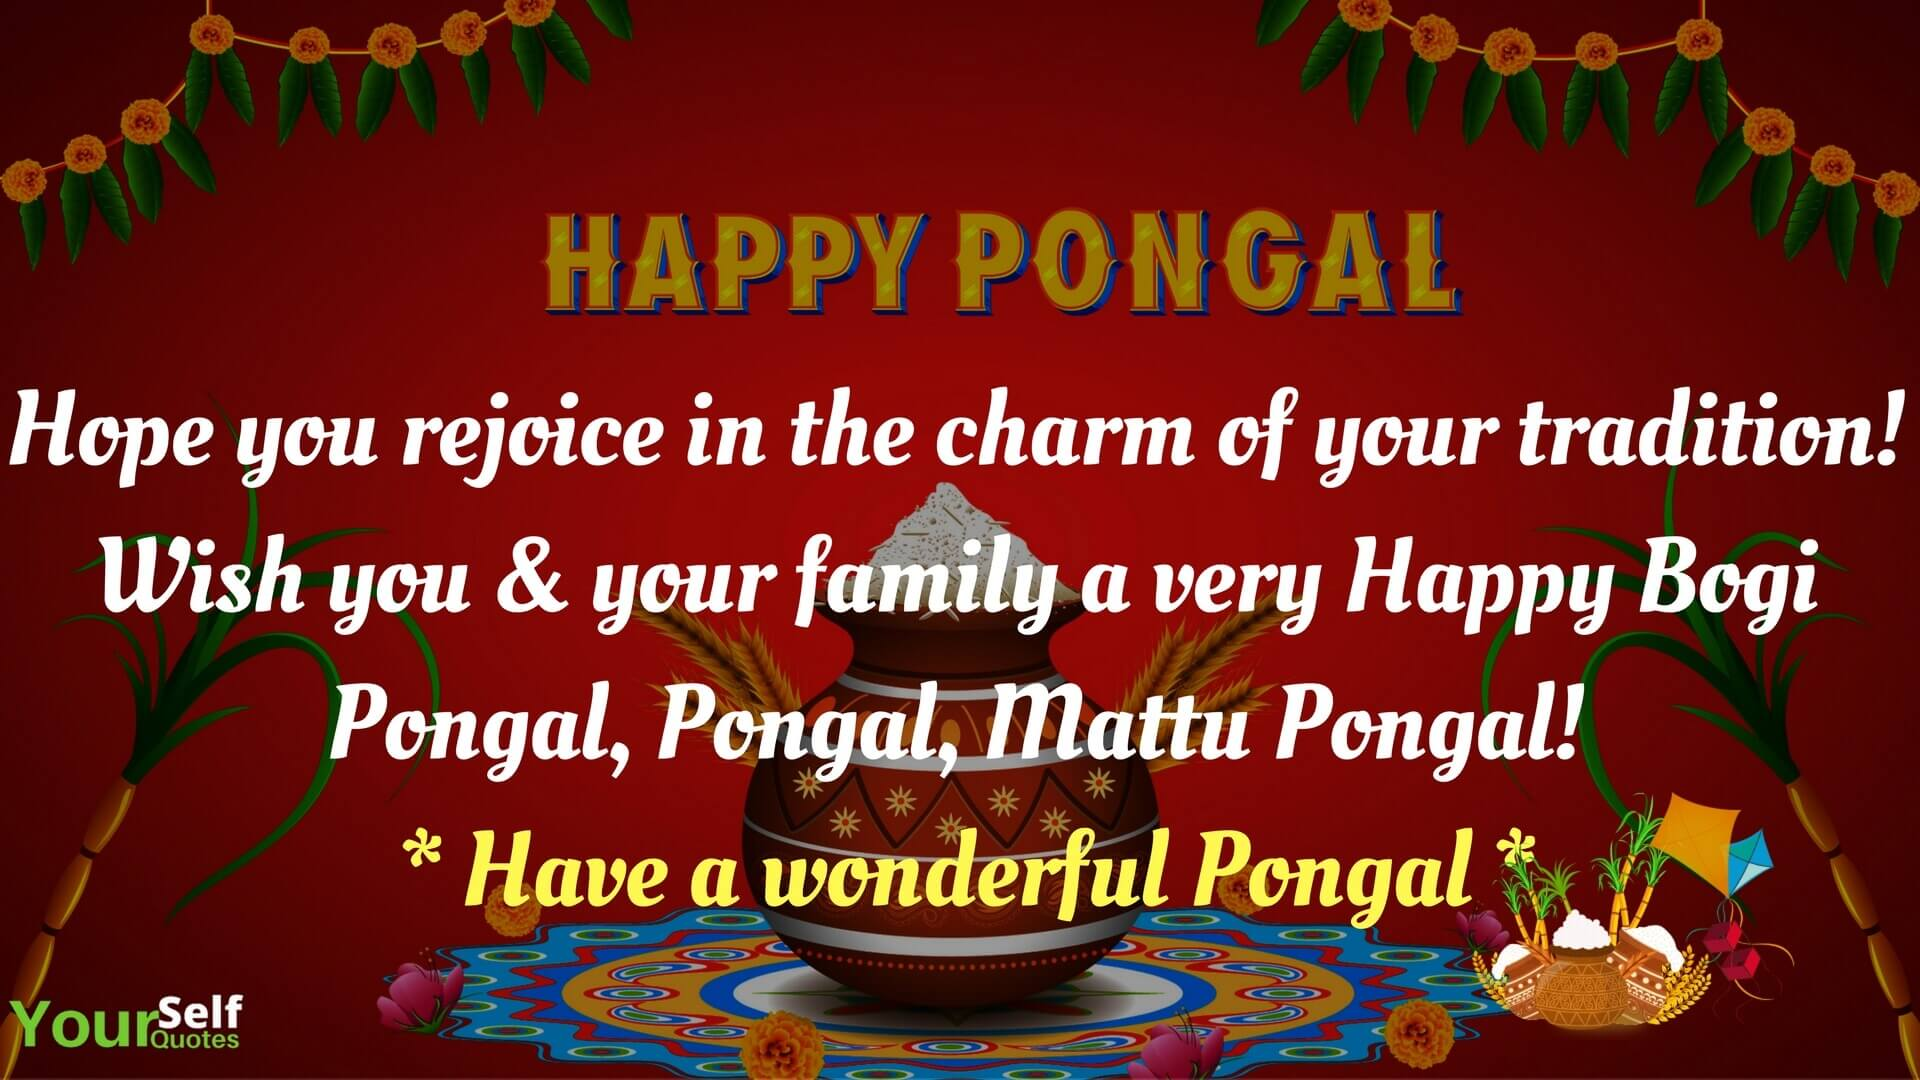 Happy Pongal Festival Wishes Messages Greetings Images